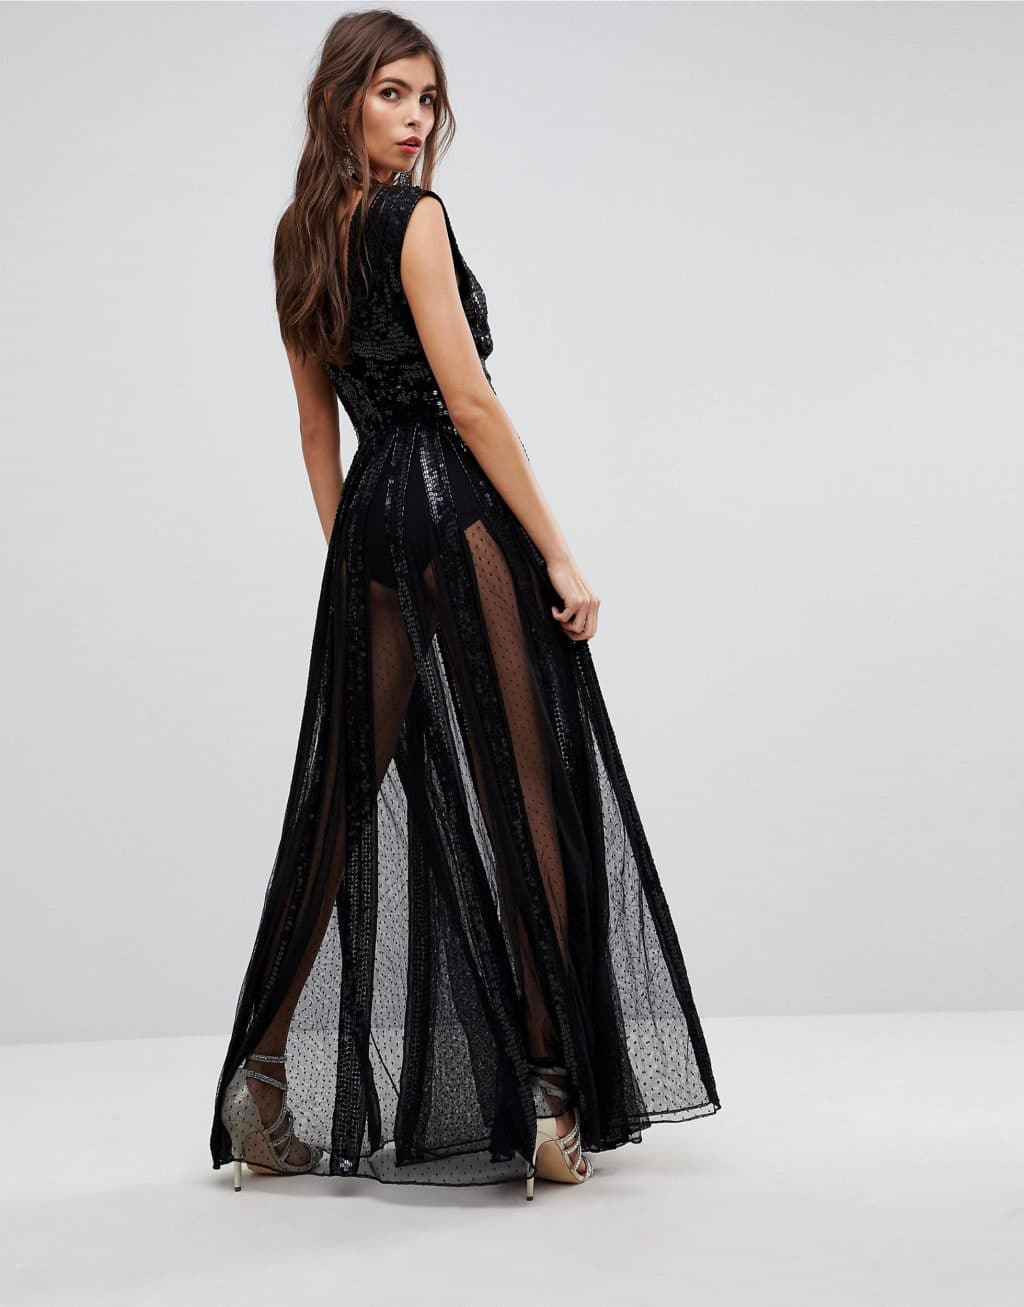 98dfe3d1d547 ASOS EDITION Sequin Mesh Fit and Flare Maxi Black Dress - We Select ...